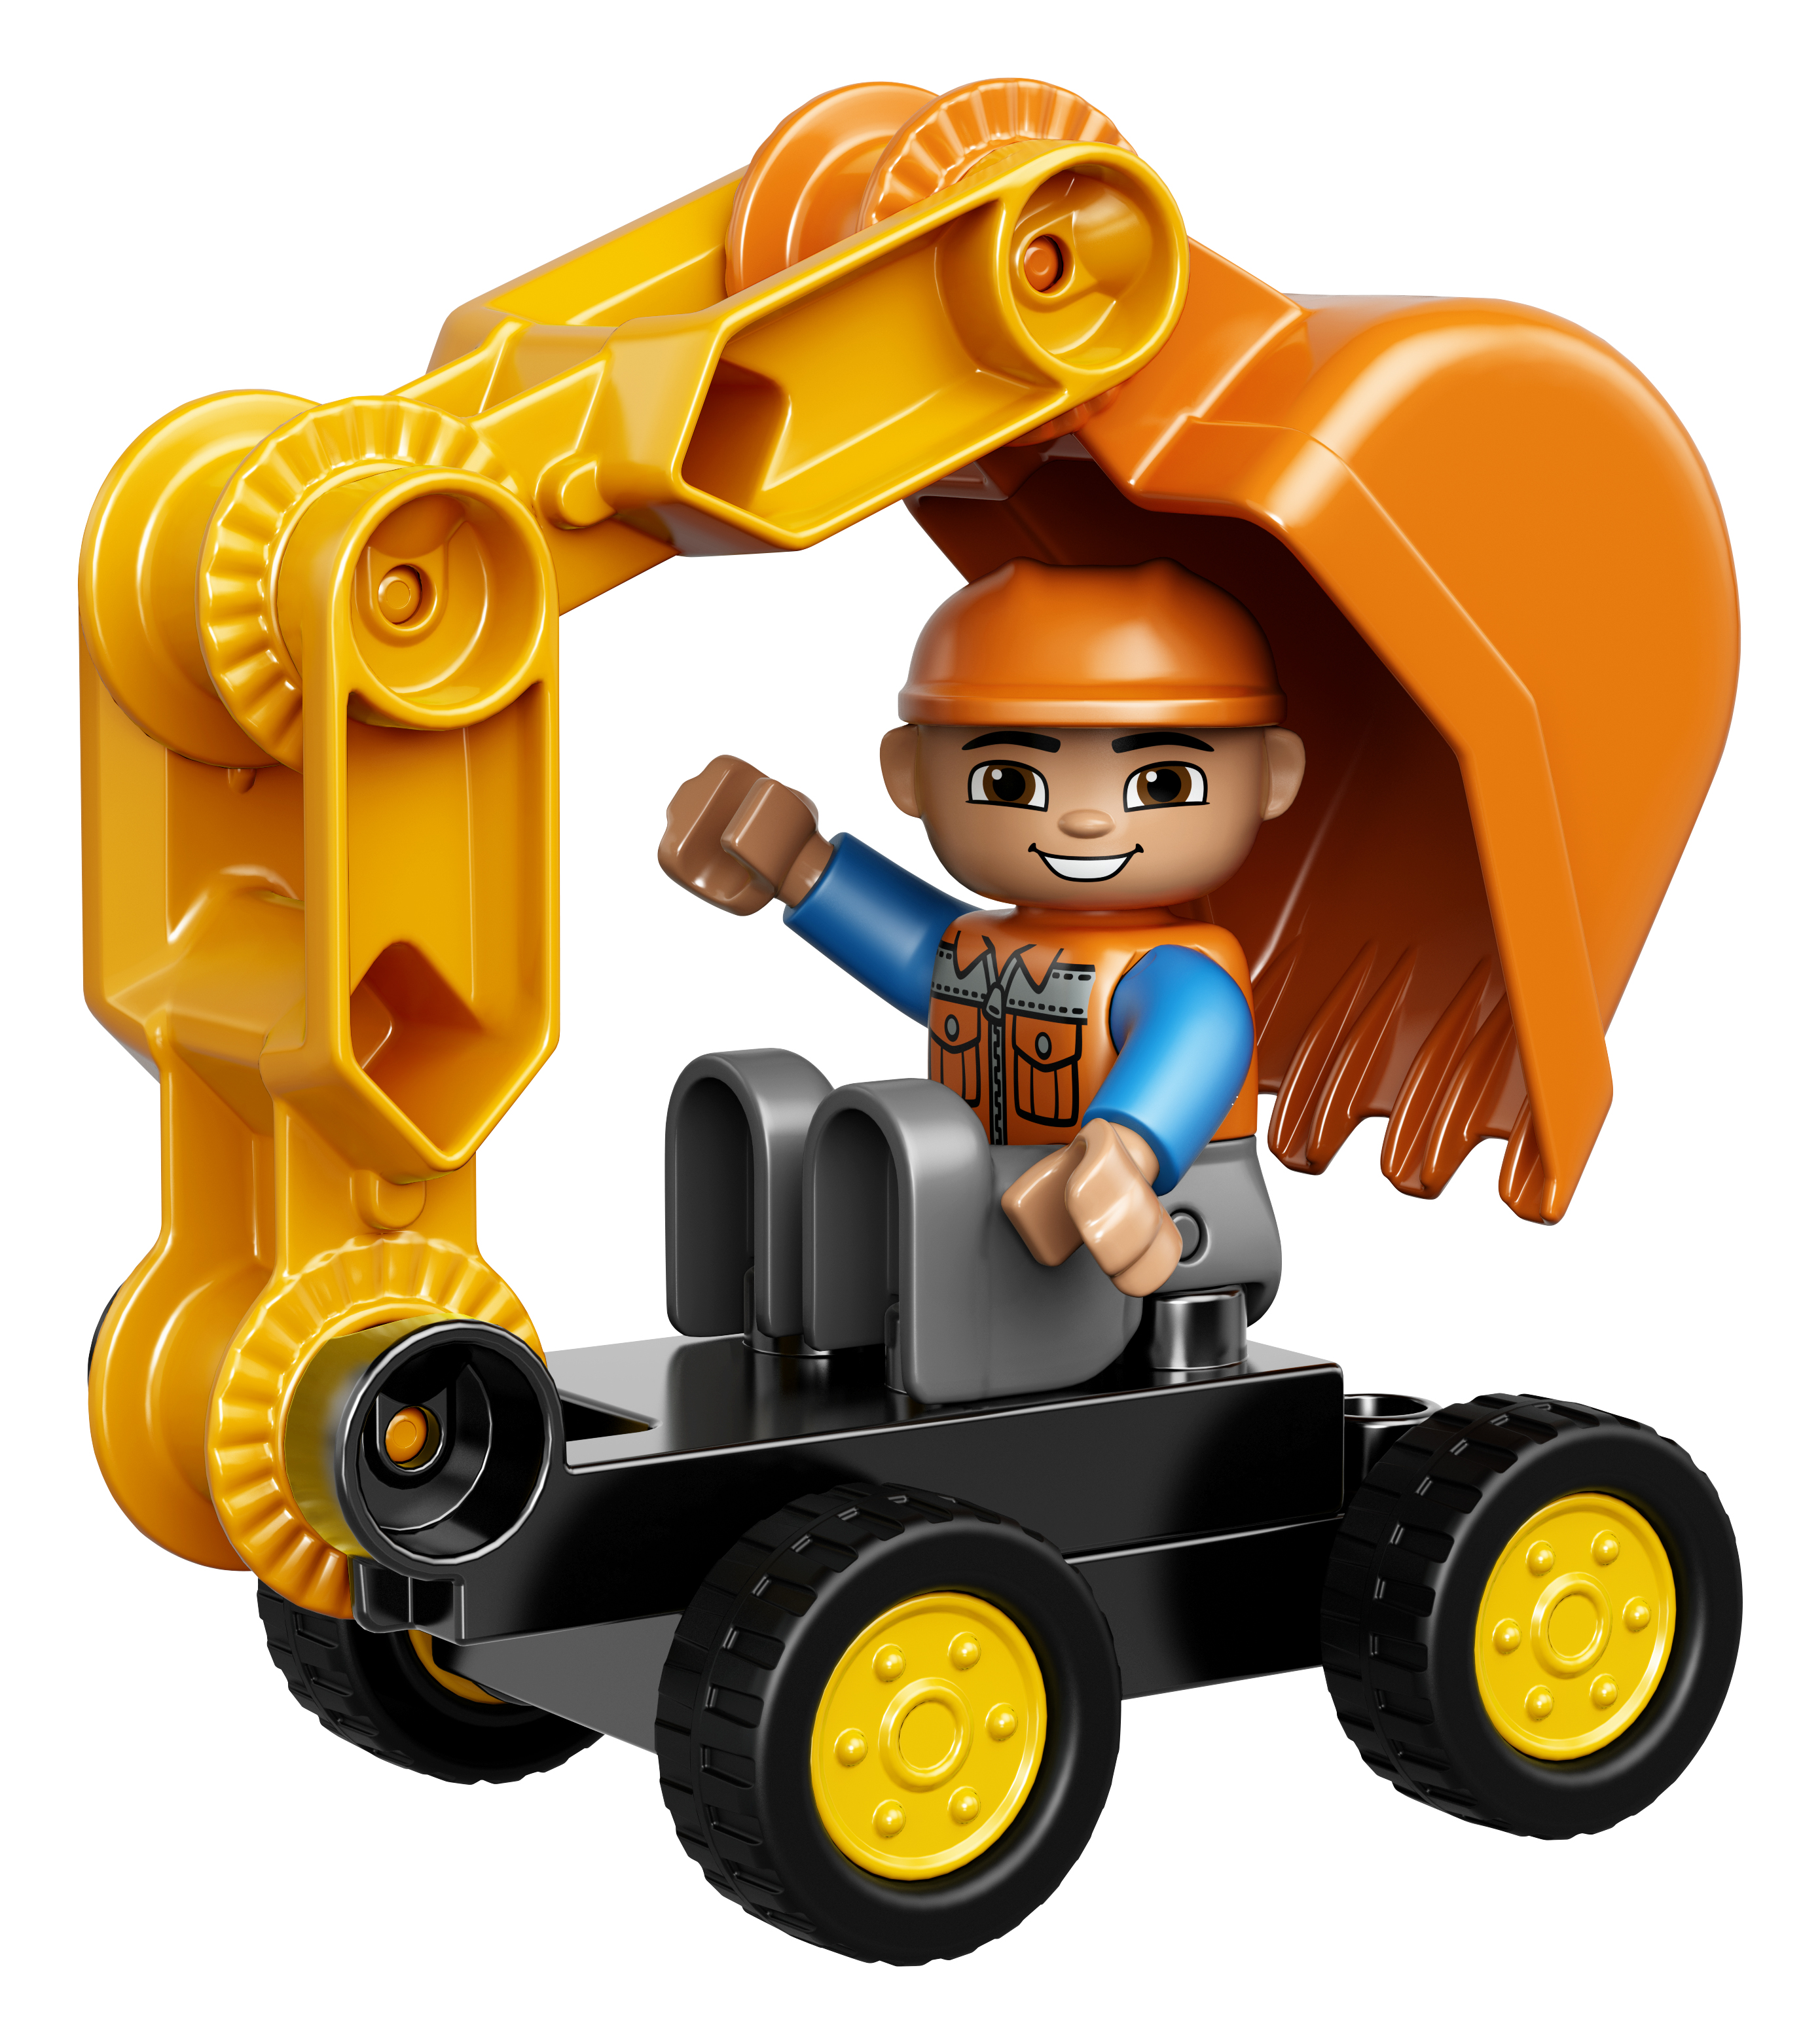 Lego Duplo 10812 Truck and Tracked Excavator 100/% complete without box